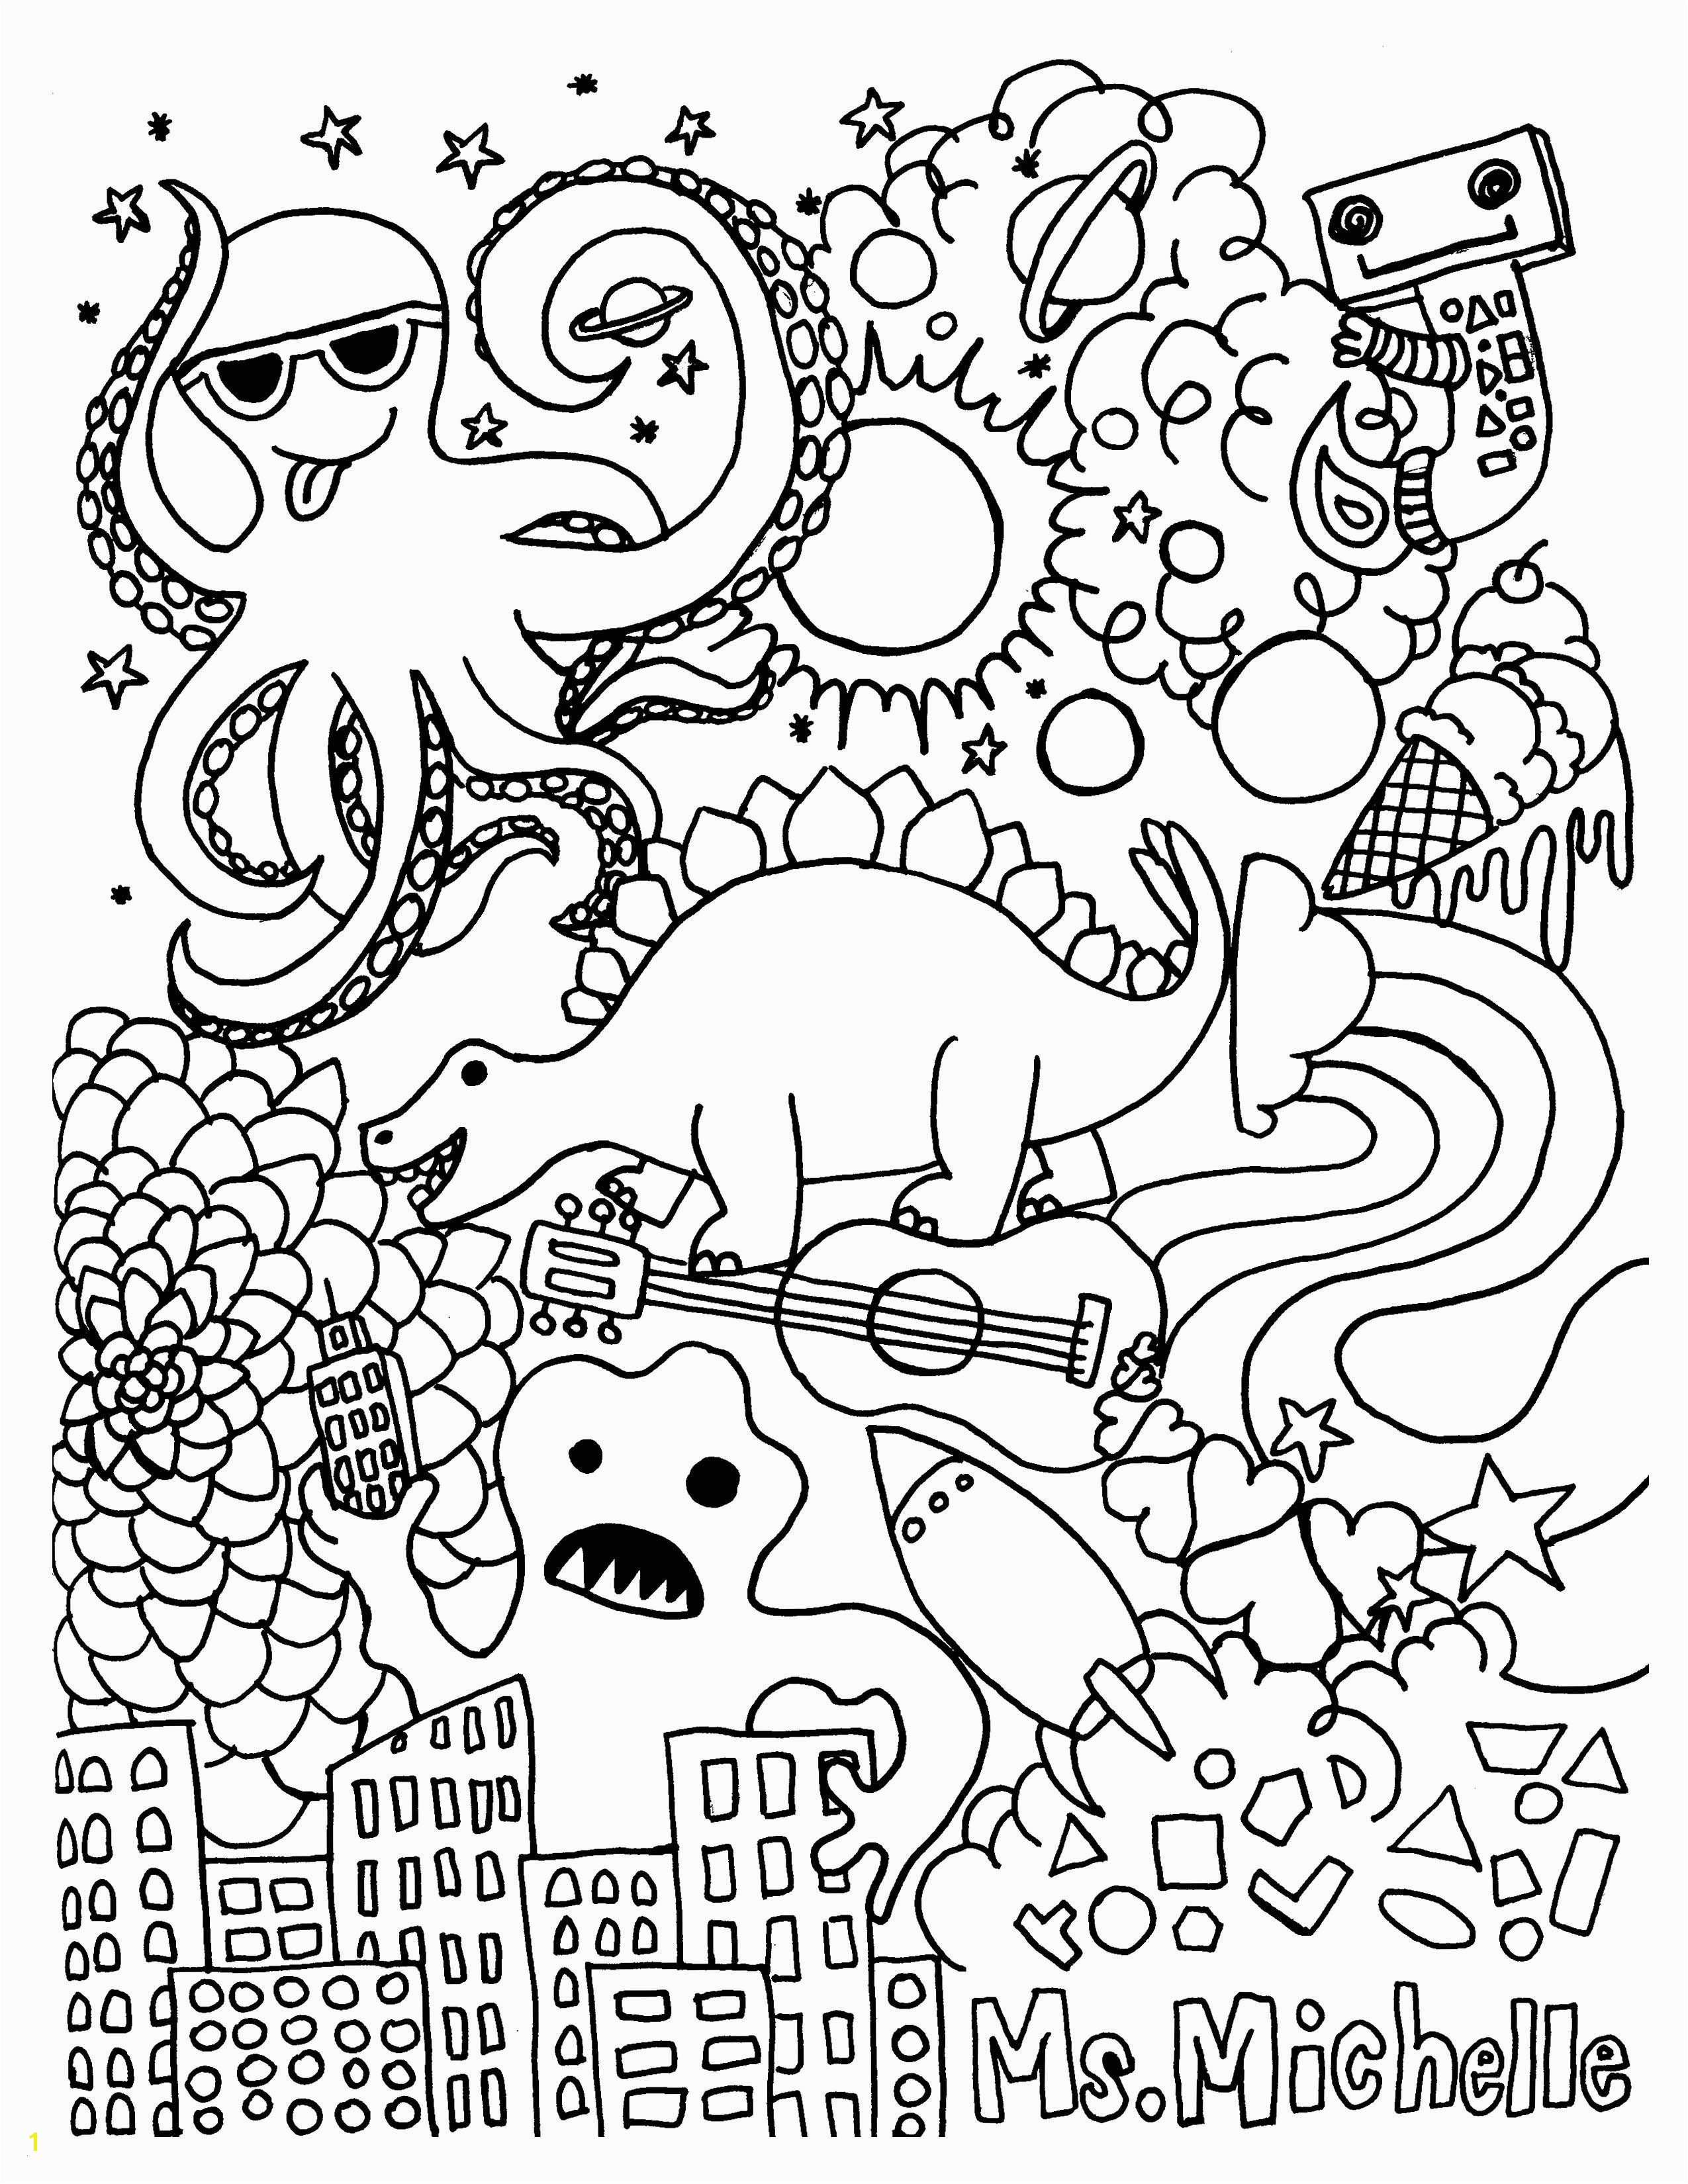 Dental Coloring Pages Free Carolyn Lucas Author at Mikalhameed